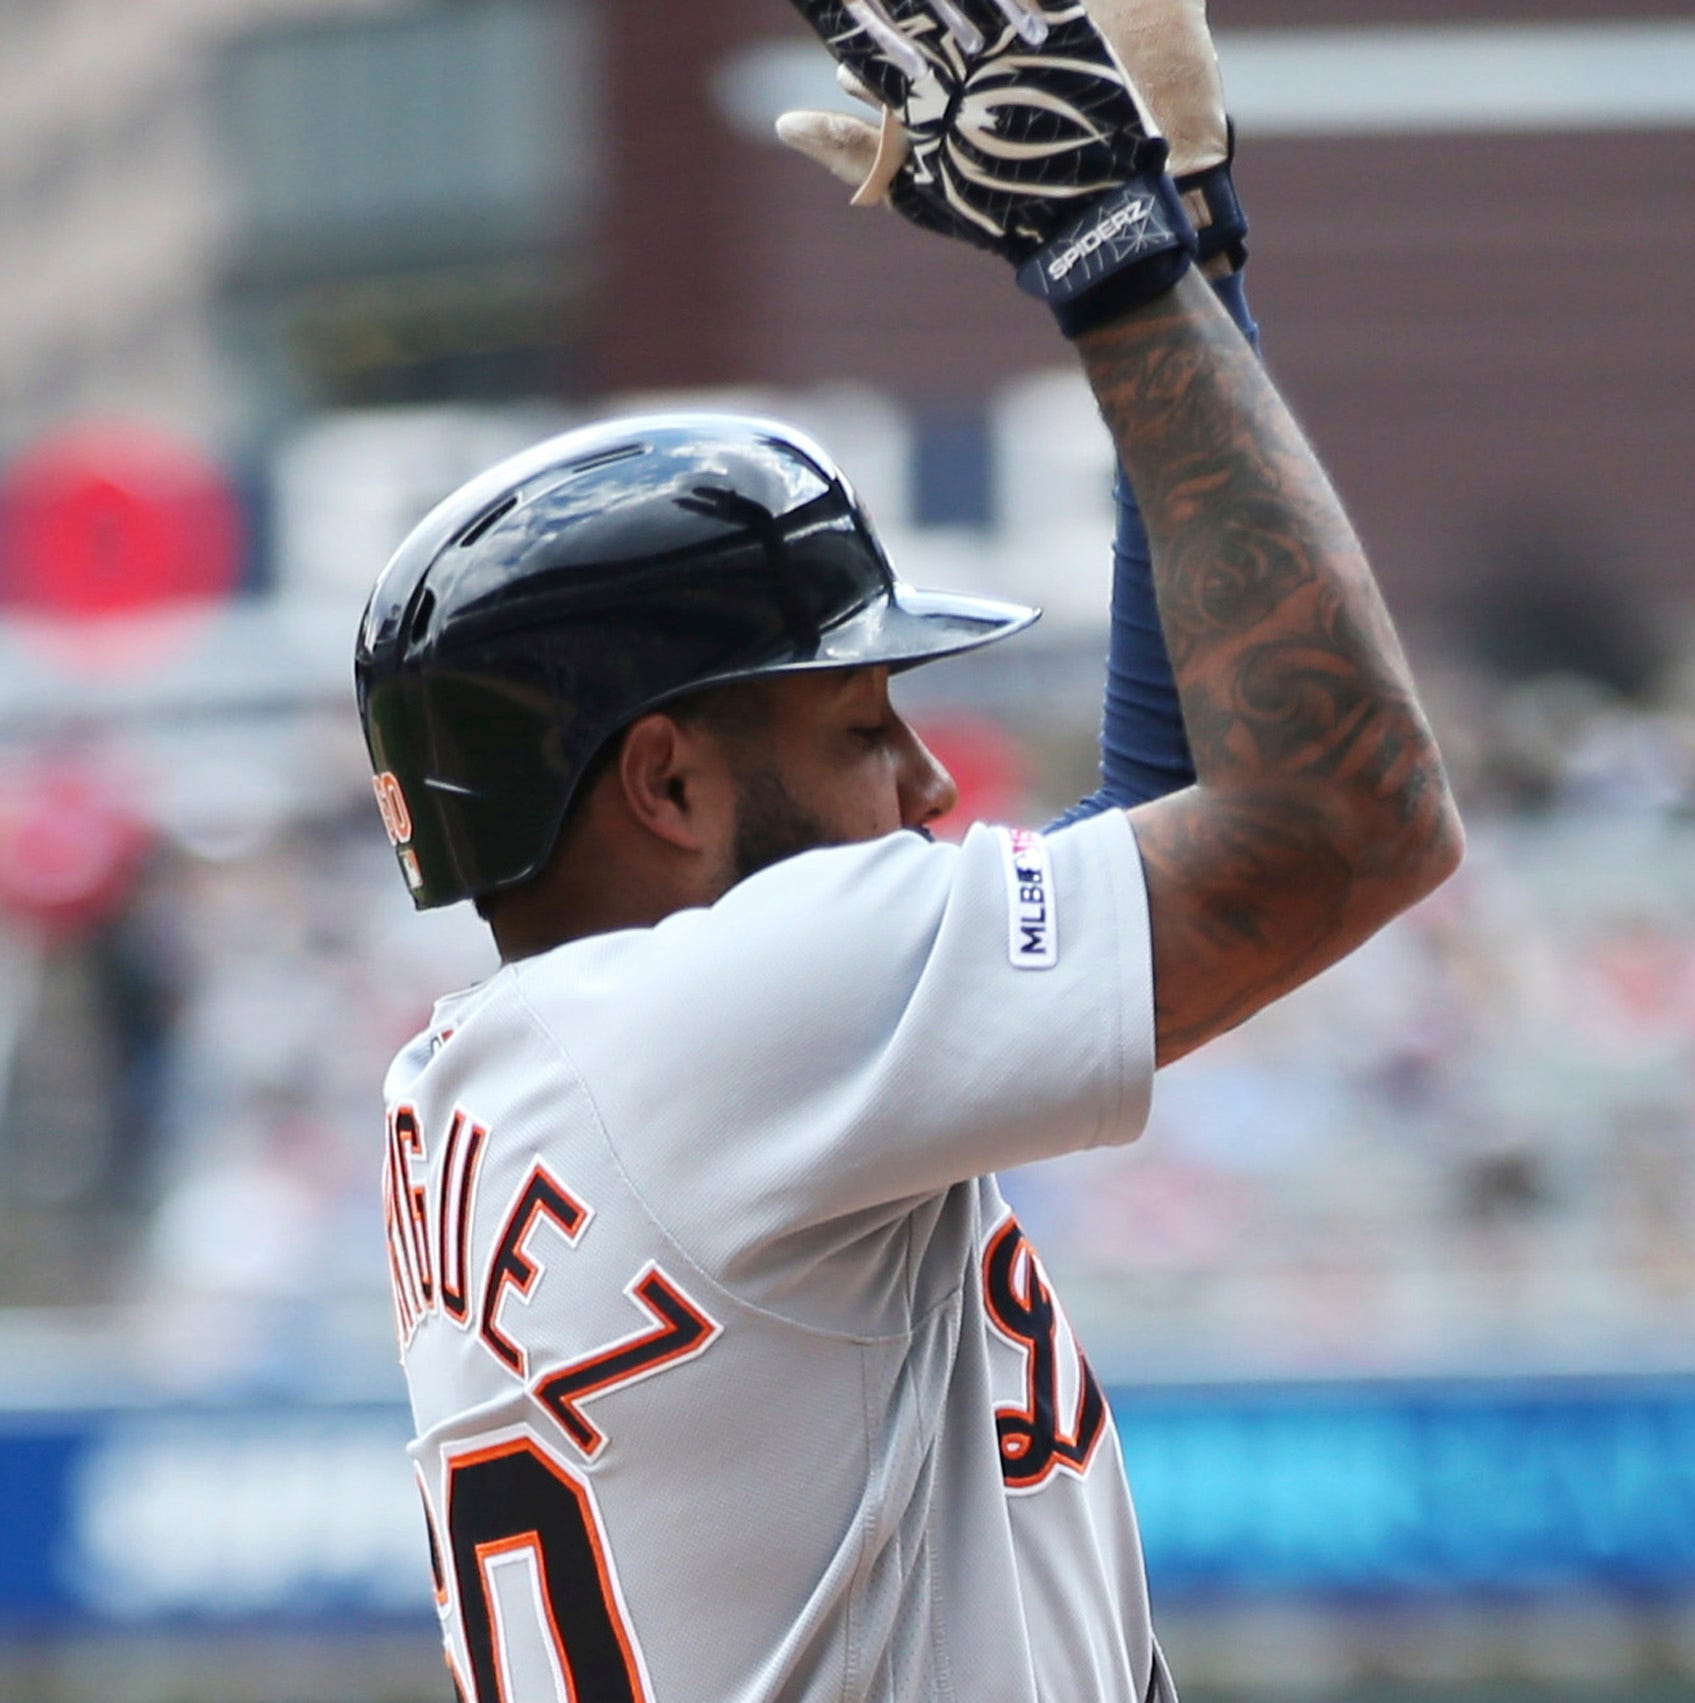 Tigers power way to Game 1 victory over Twins, Gardenhire ejected